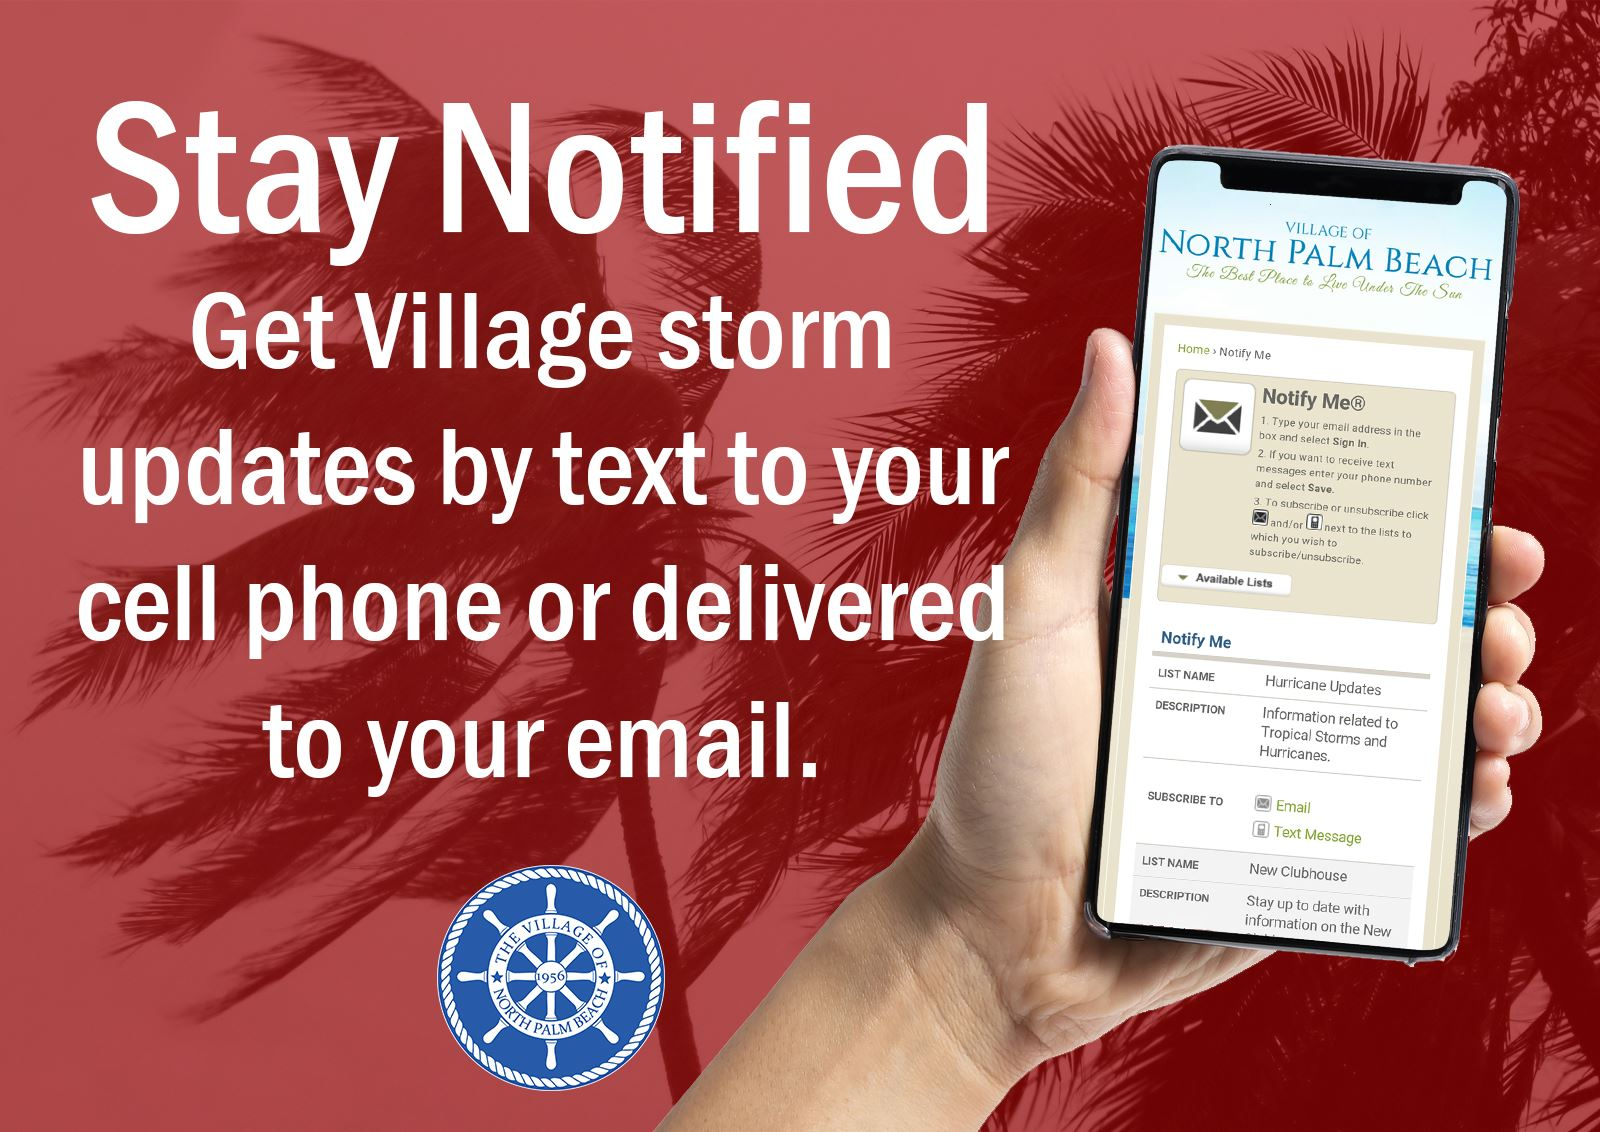 Image of cell phone in hand, with text saying Stay Notified Get Village storm updates by text to you